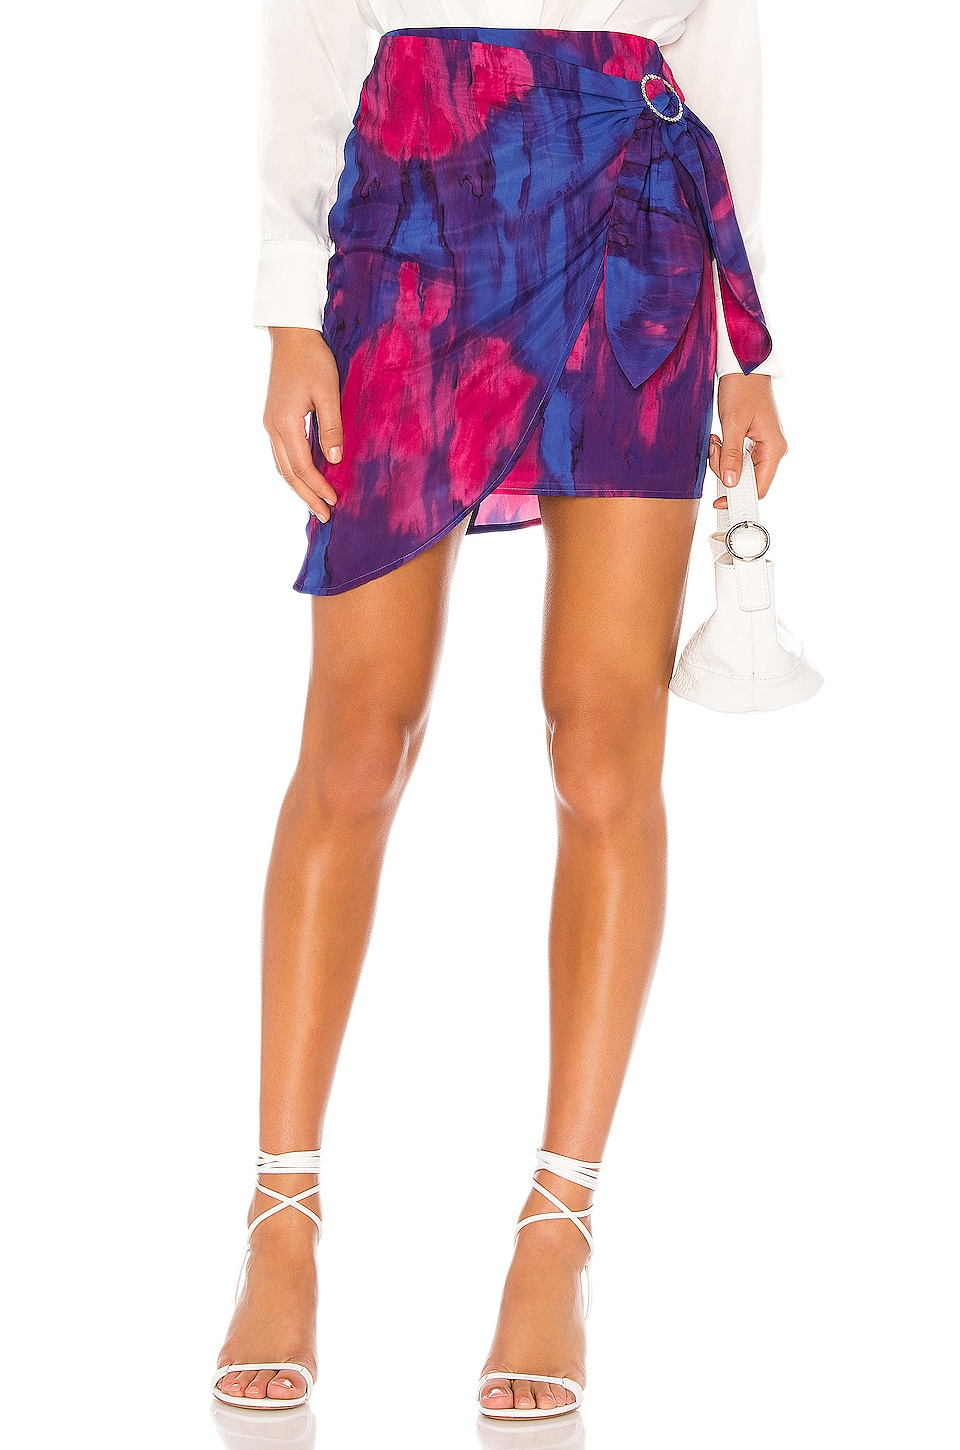 MAJORELLE Hoover Mini Skirt in Tie Dye Multi